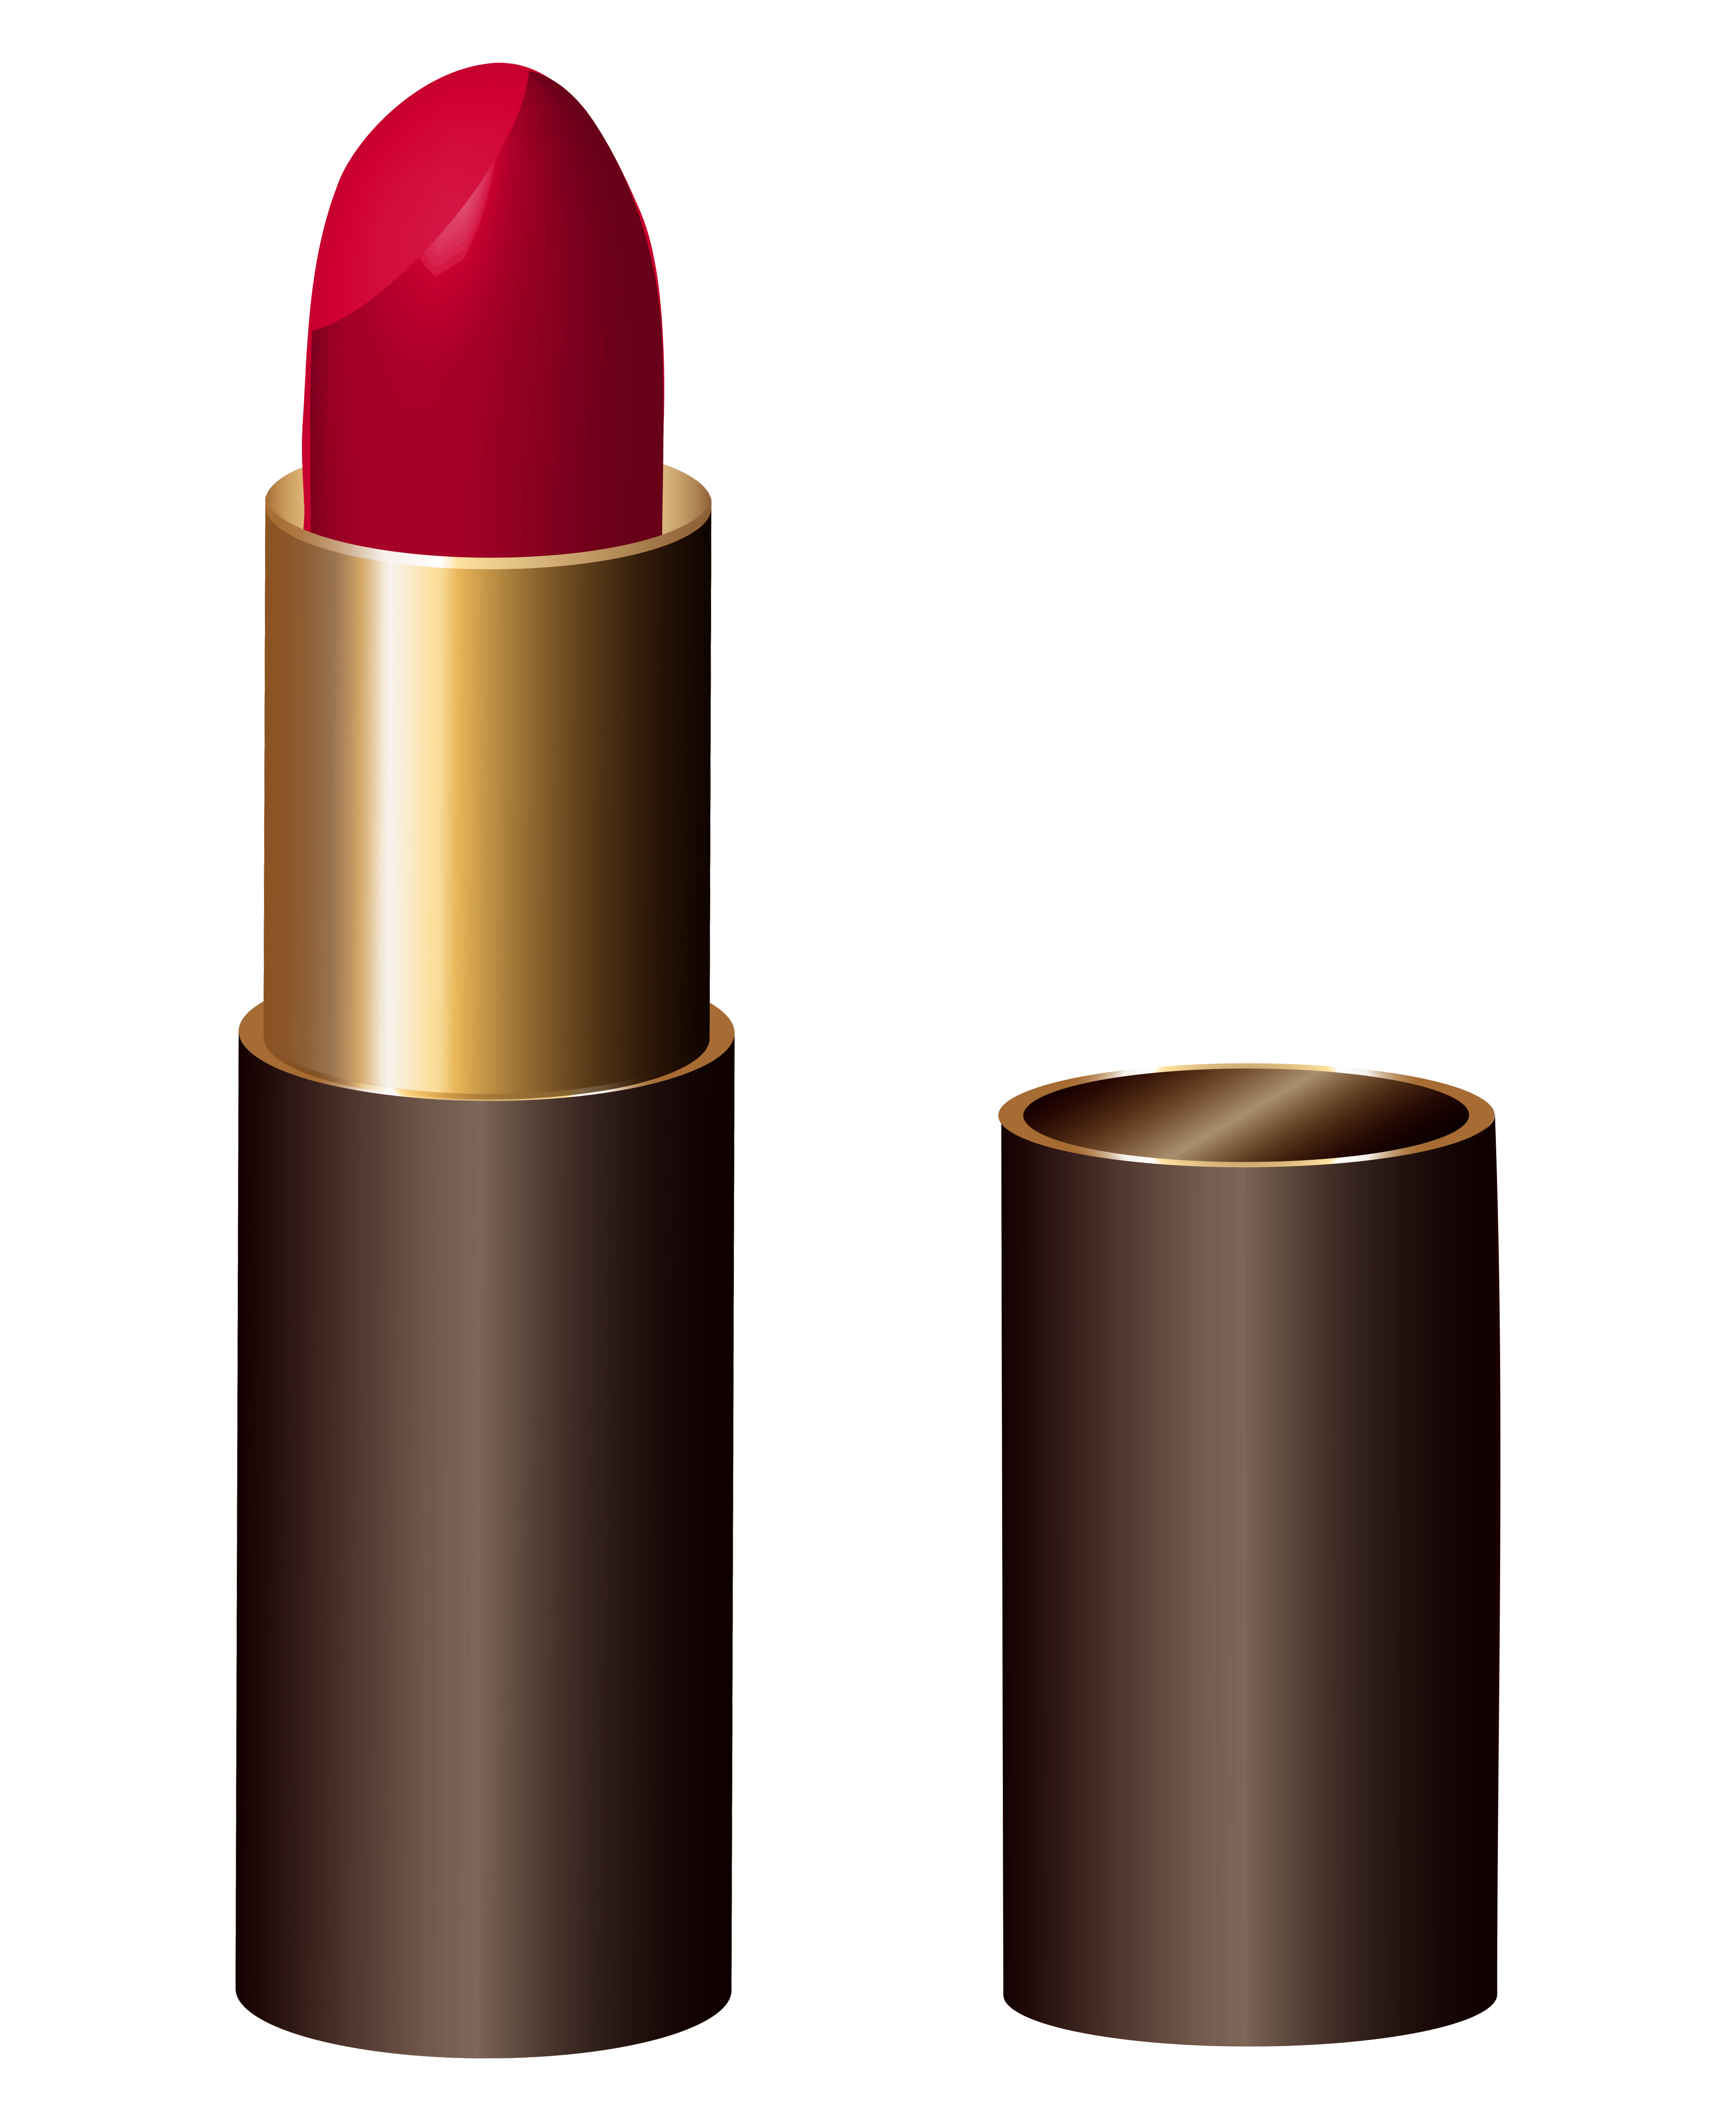 Lipstick clipart Red image ClipartBarn lipstick and